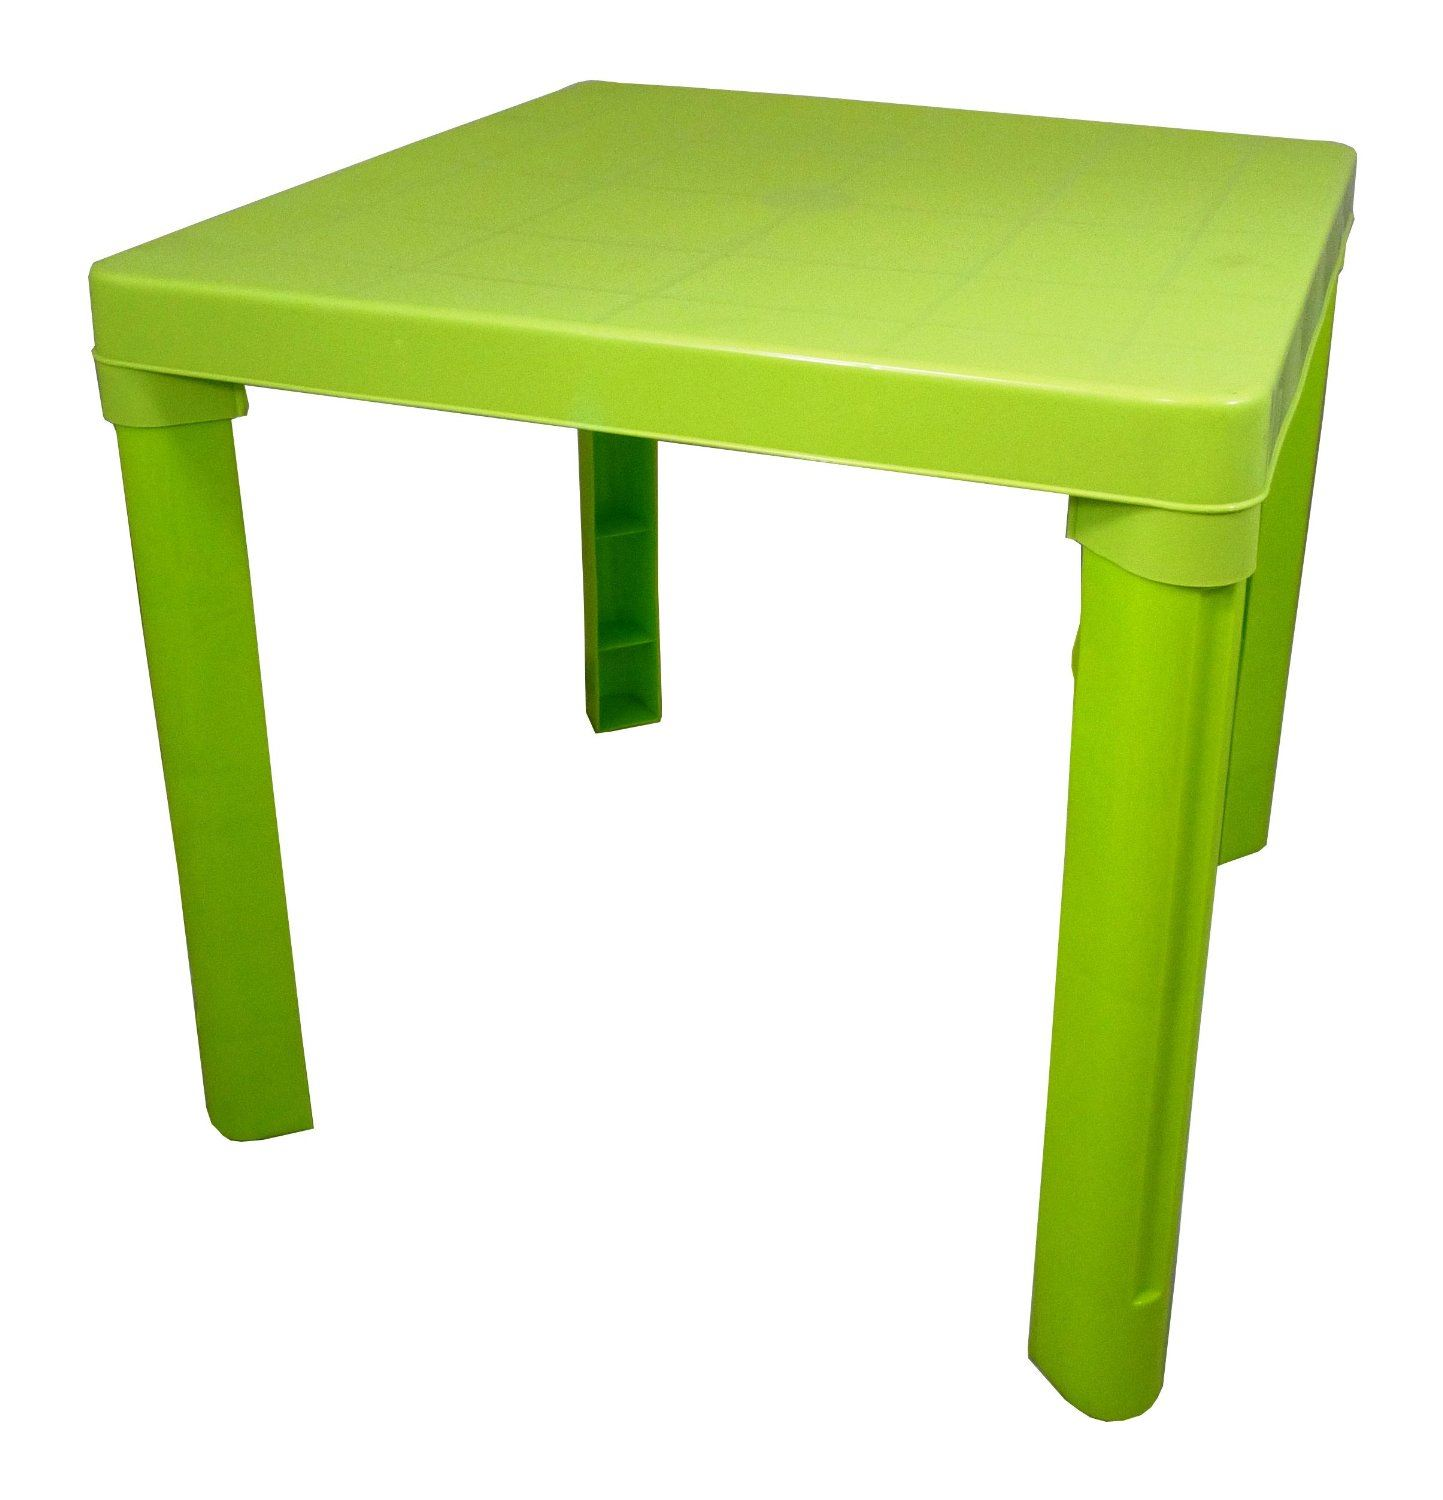 New Plastic Childrens Table Amp Chairs Set Coloured Nursery